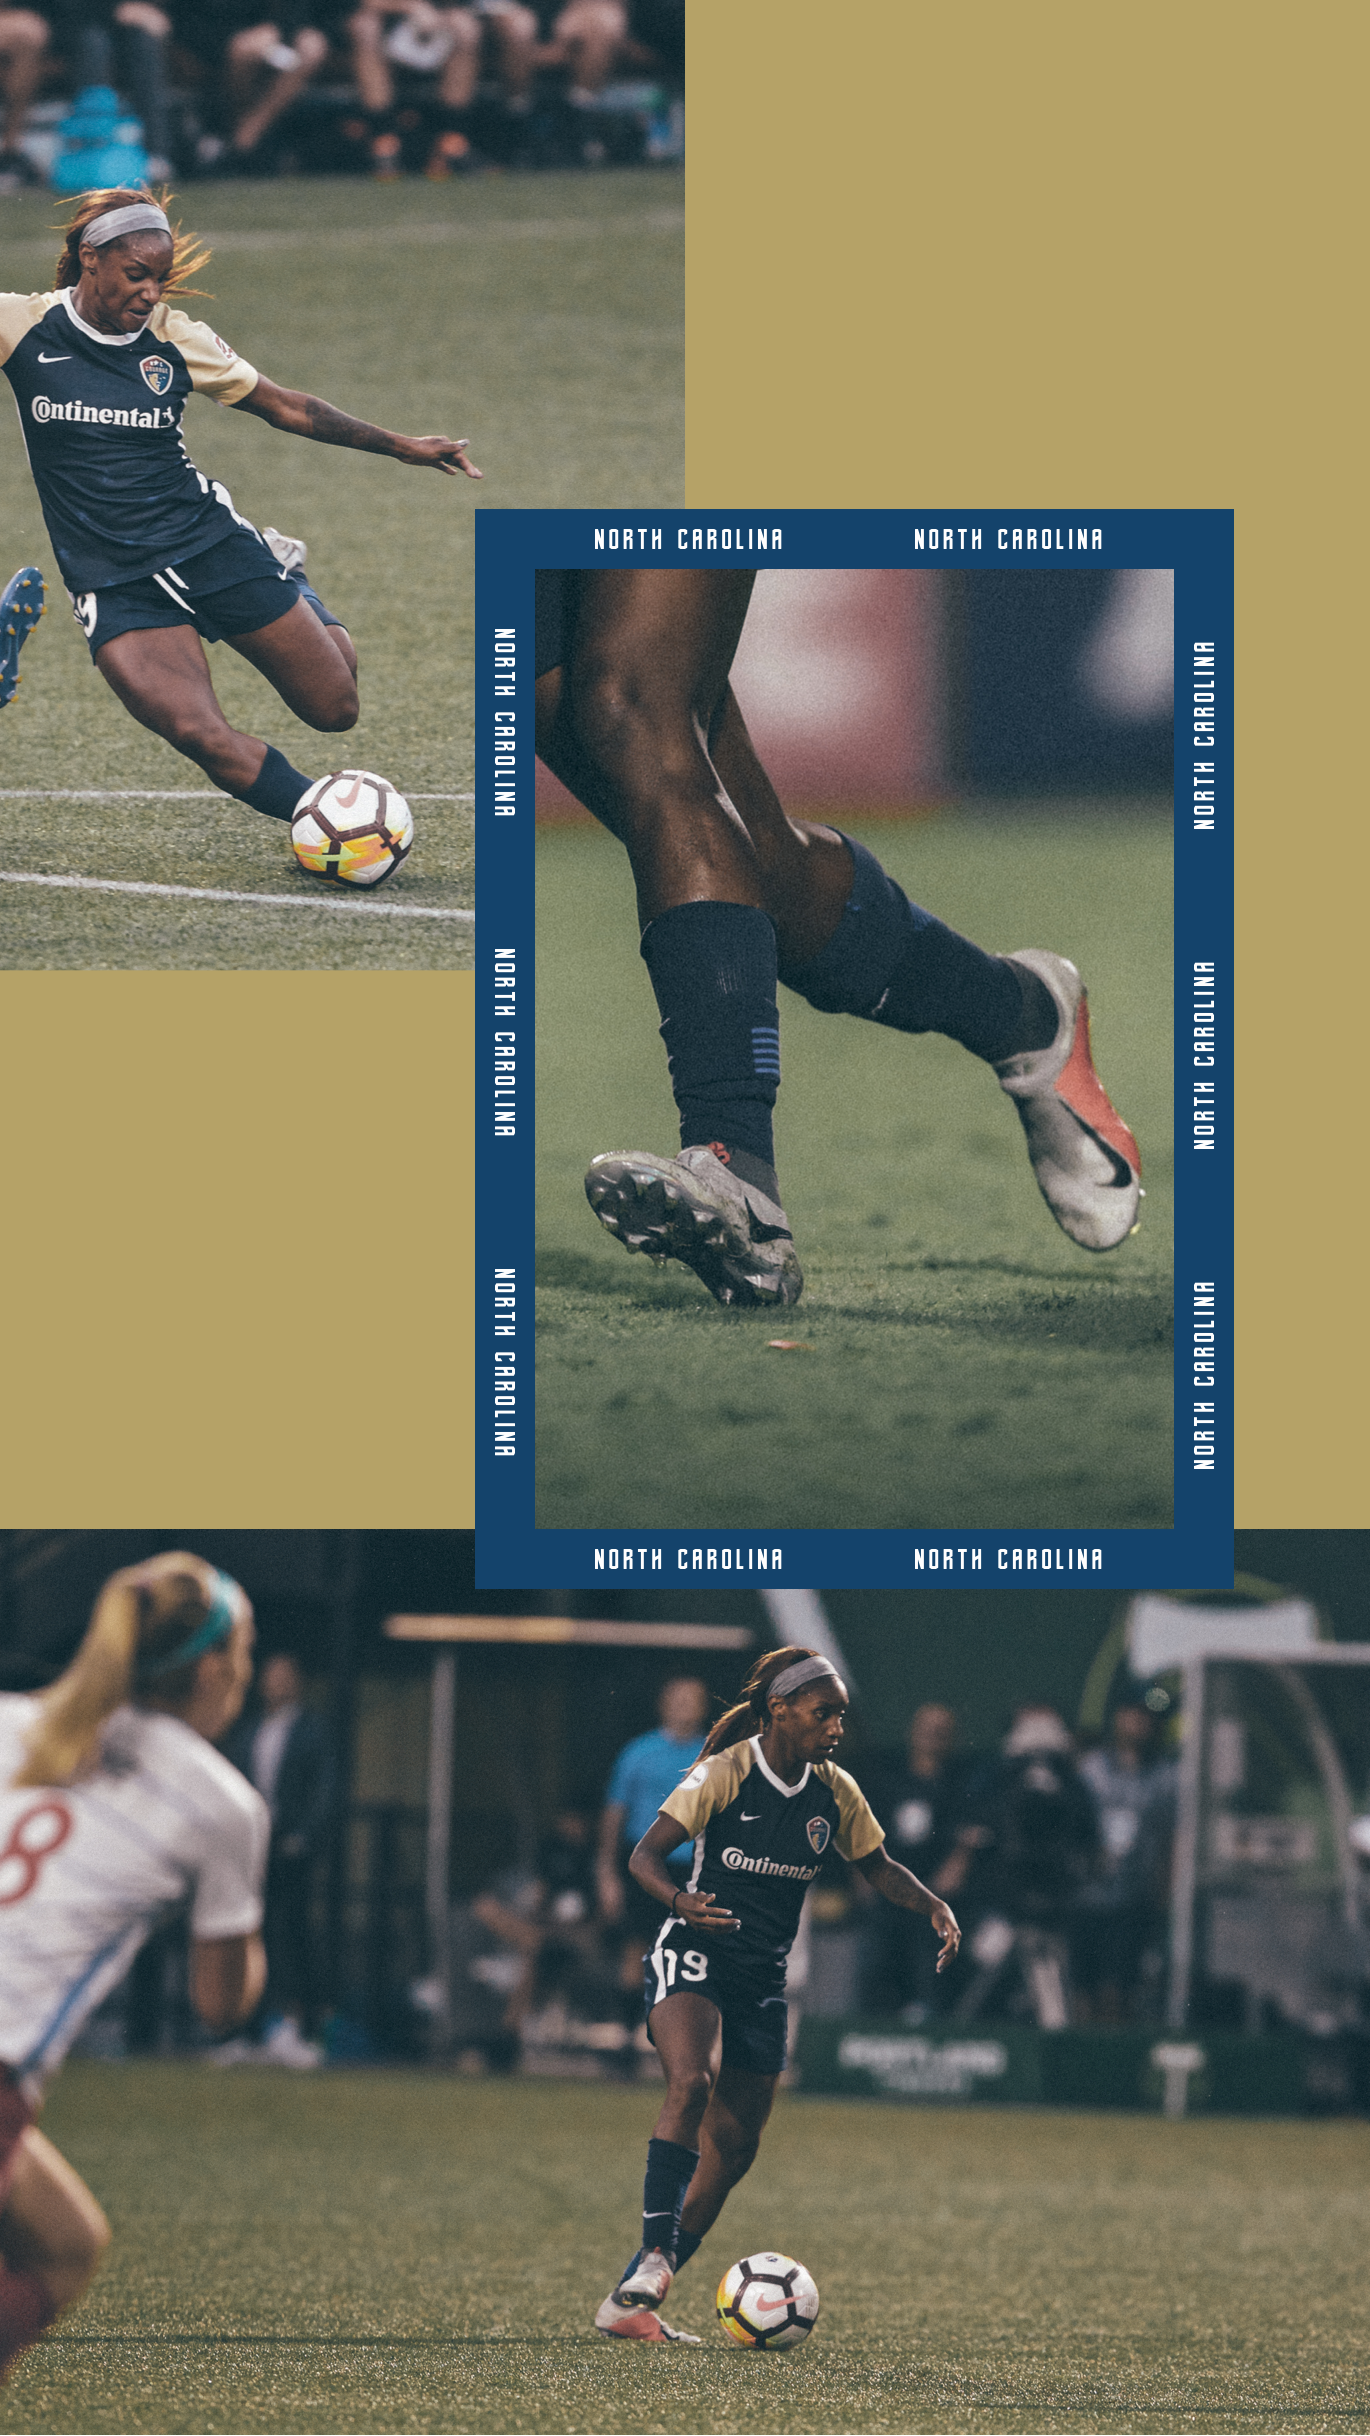 NIKE-NWSL-IG-STORY-11.png